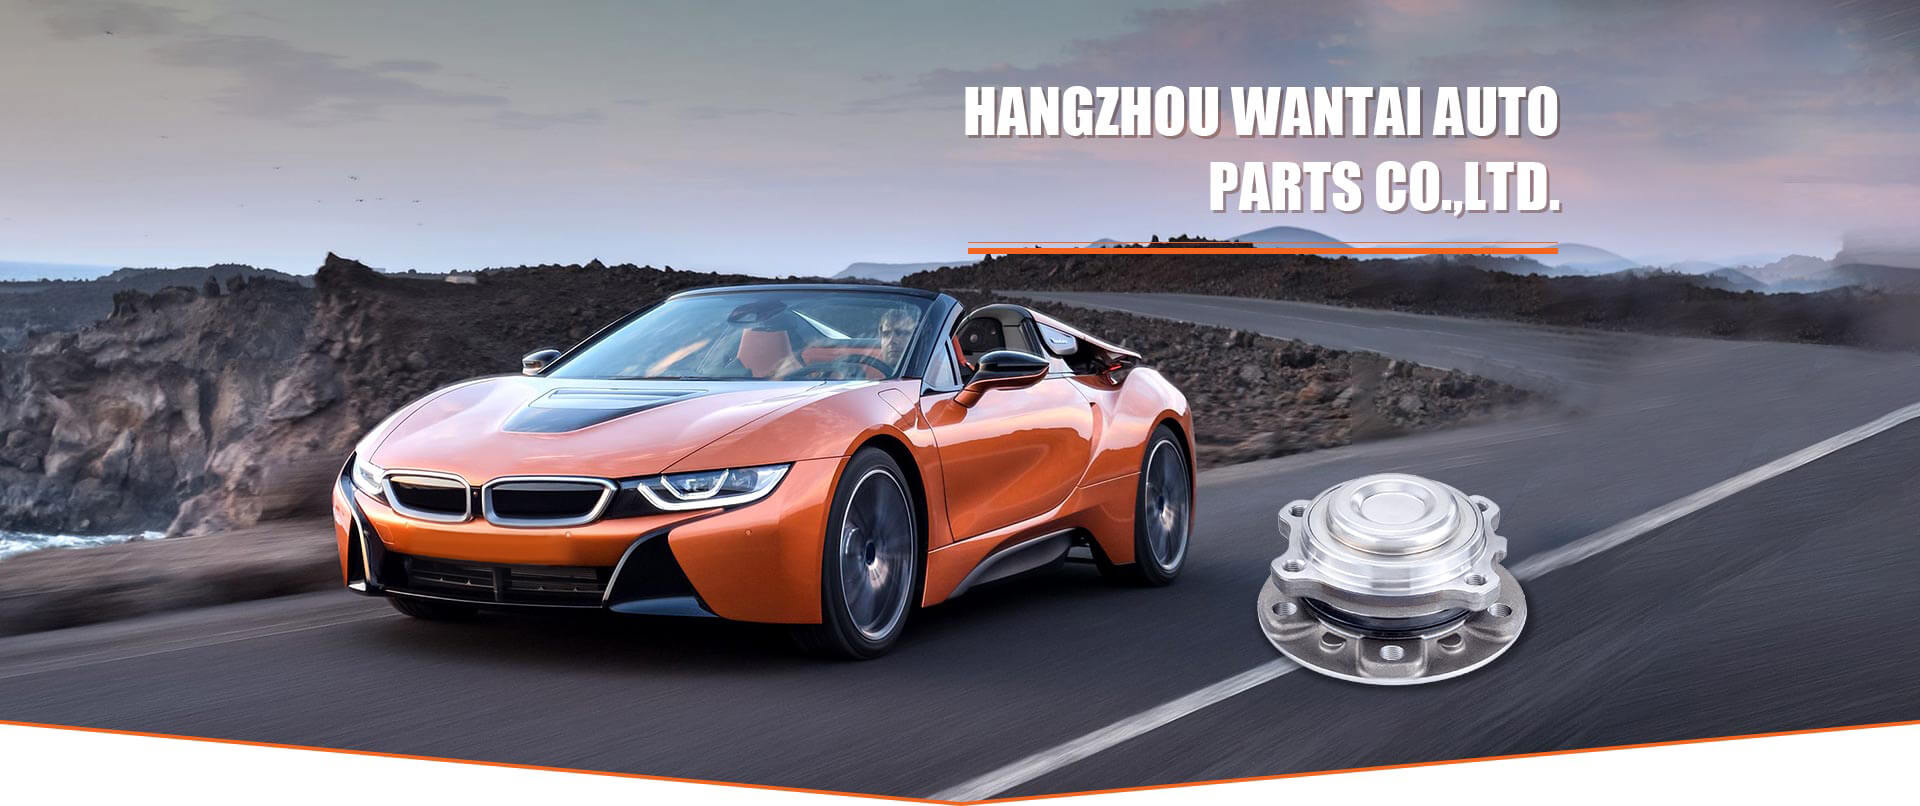 Hangzhou Wantai Auto Parts Co., Ltd.